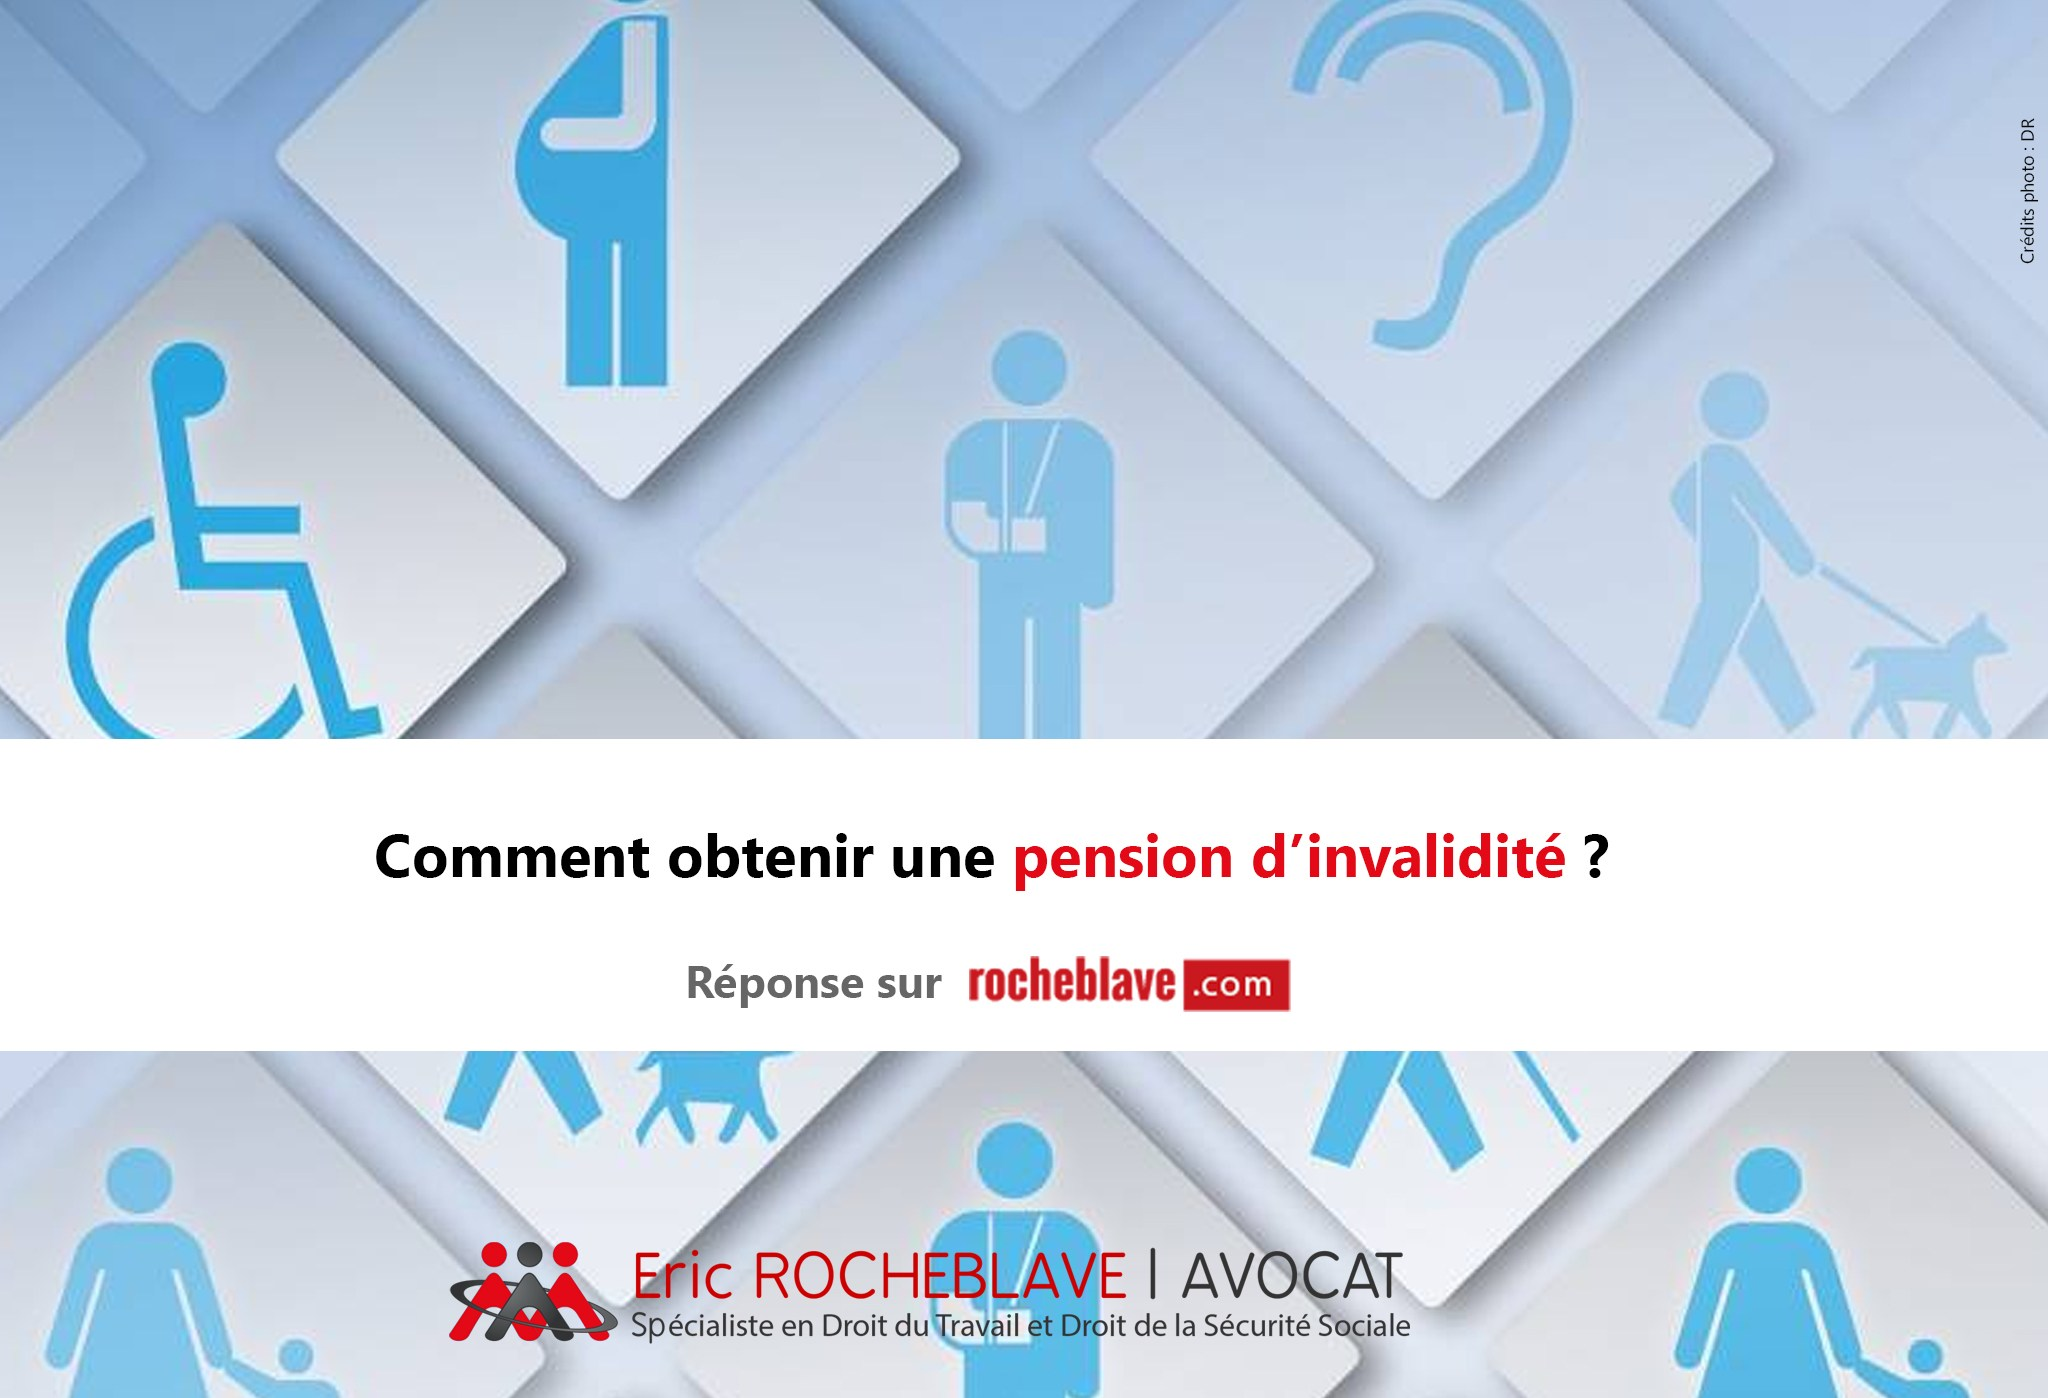 Comment obtenir une pension d'invalidité ?